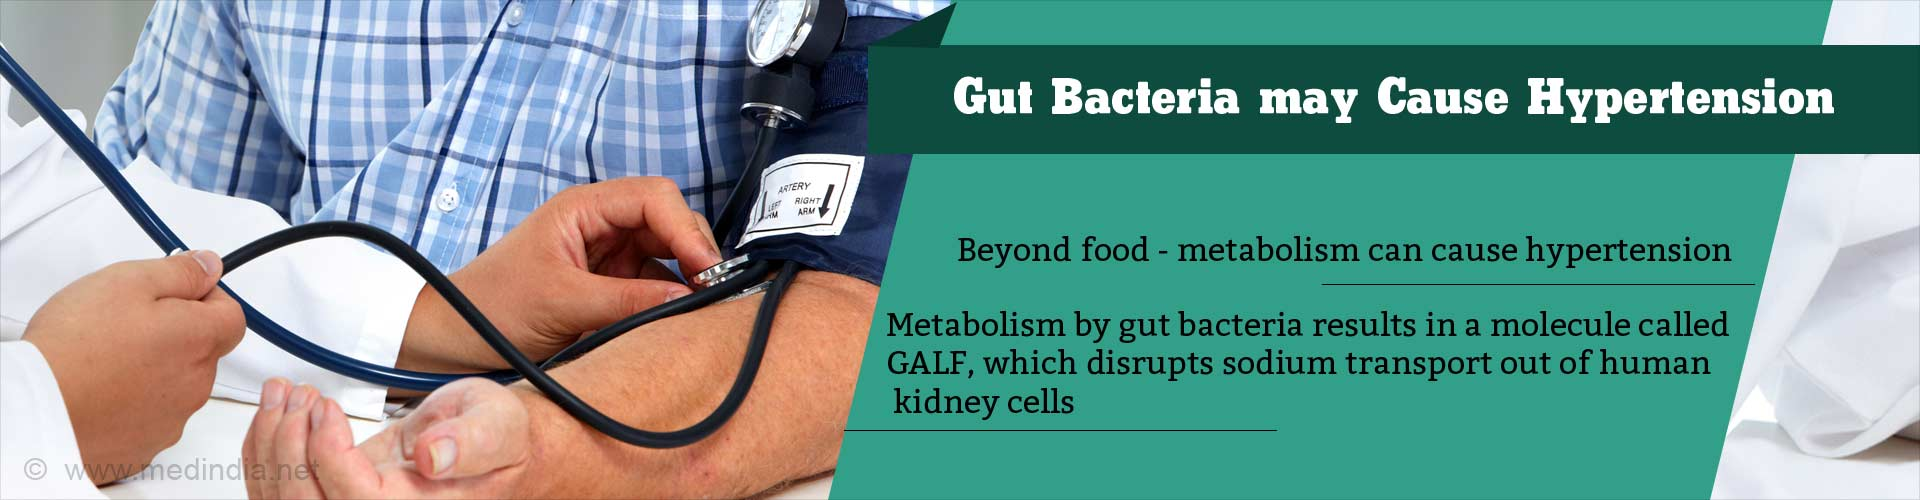 Hypertension is Caused by Gut Bacteria Metabolism